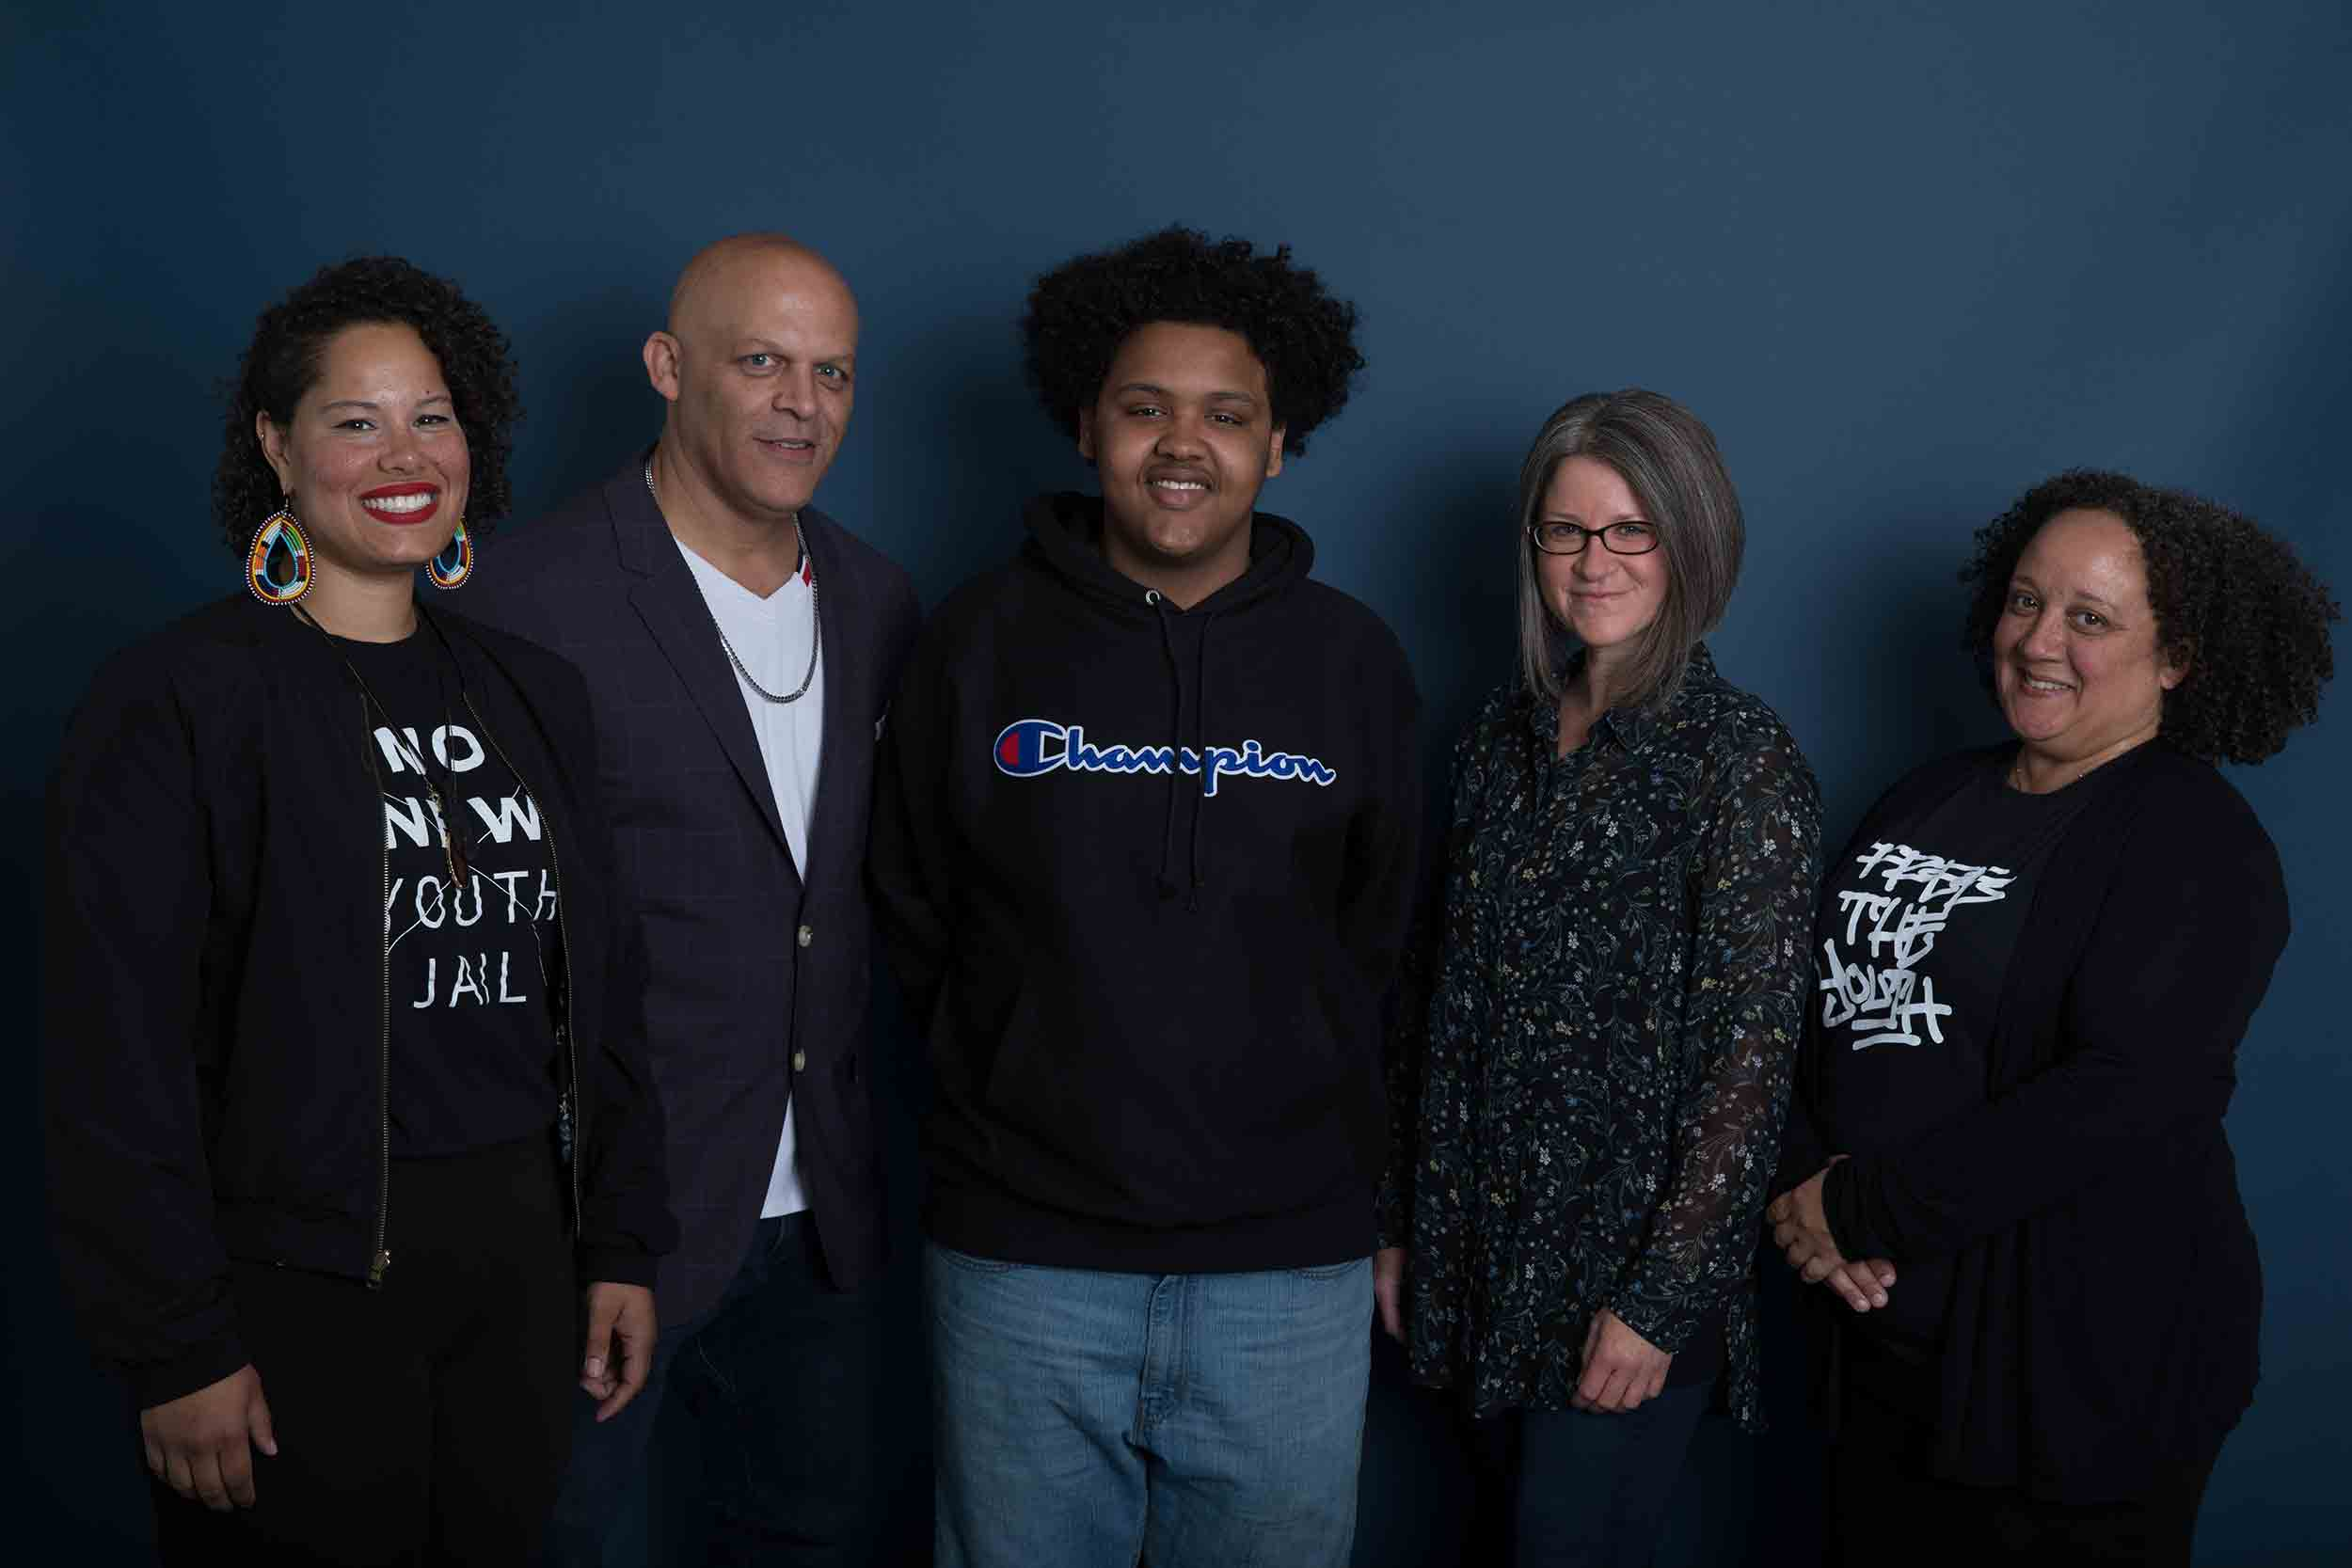 Among the five Crosscut Courage Awards winners is Creative Justice, an organization recognized in the Courage in Culture category. From left to right: Nikkita Oliver, Aaron Counts, Kardea Buss, Jordan Howland, and Heidi Jackson of Creative Justice. (Photo by Matt M. McKnight/Crosscut)